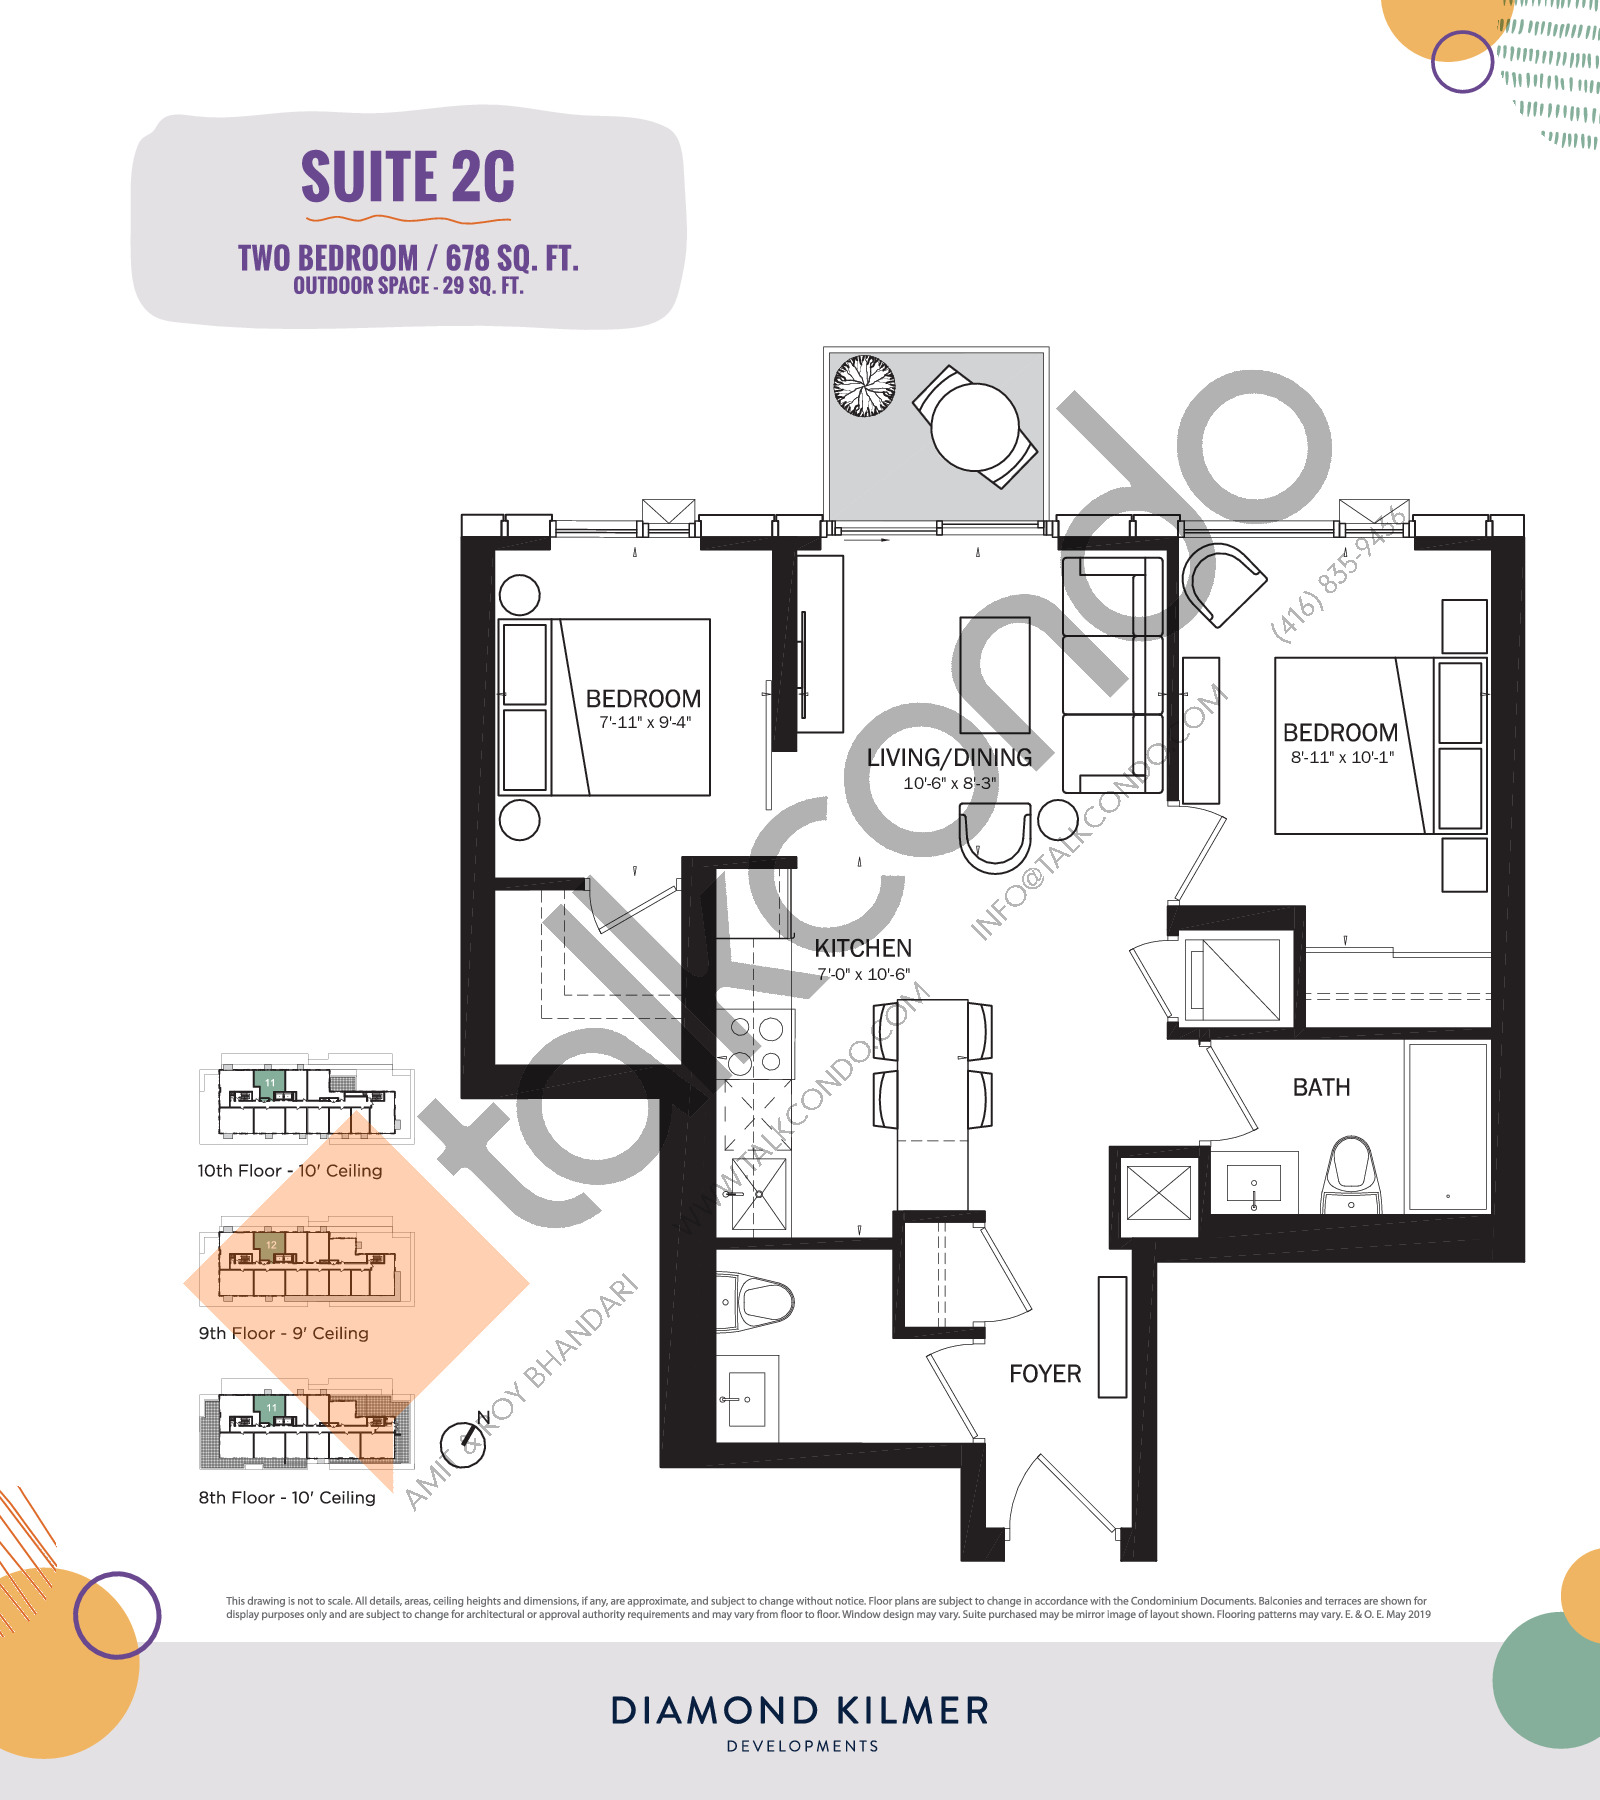 2C Floor Plan at Reunion Crossing Condos & Urban Towns - 678 sq.ft